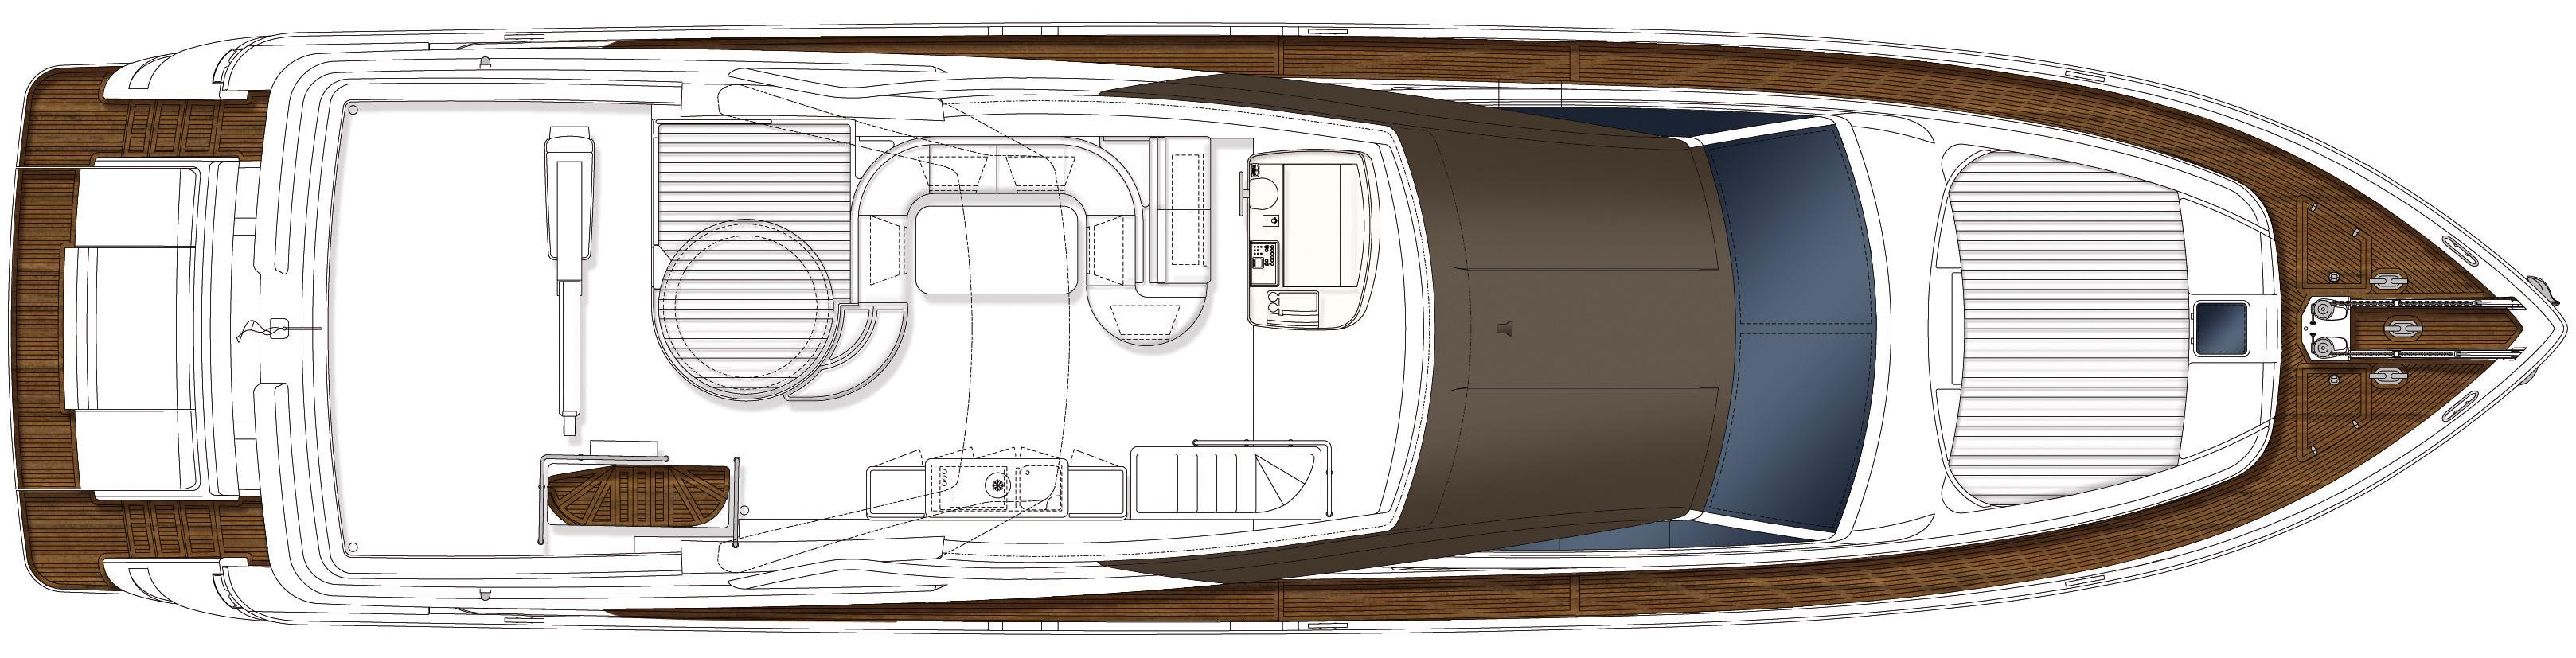 Manufacturer Provided Image: Ferretti 870 Flybridge Layout Plan